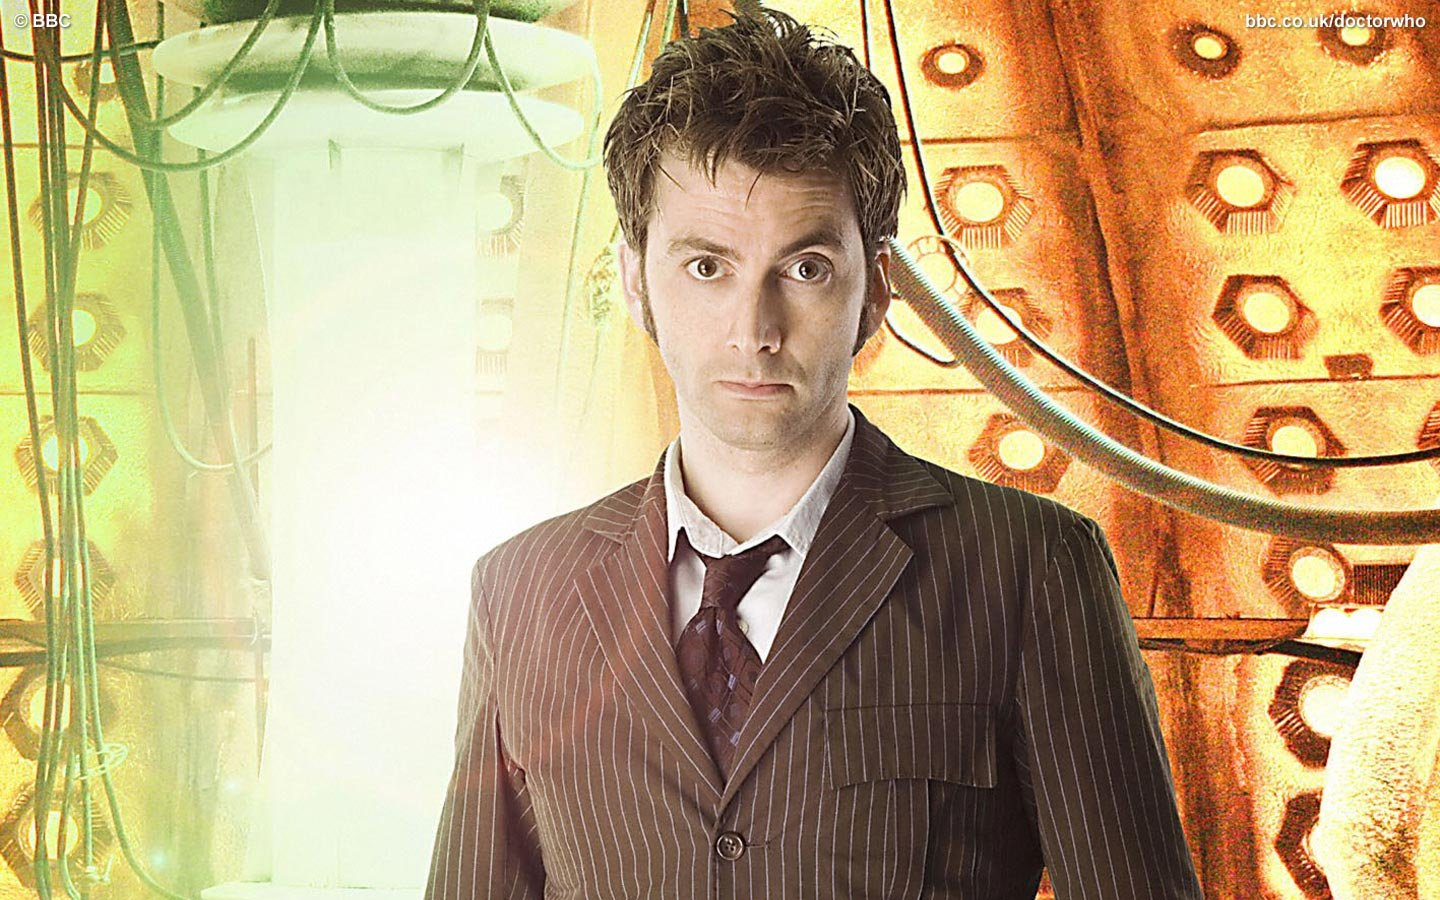 David Tennant Doctor Who Tenth Doctor Wallpaper 1440x900